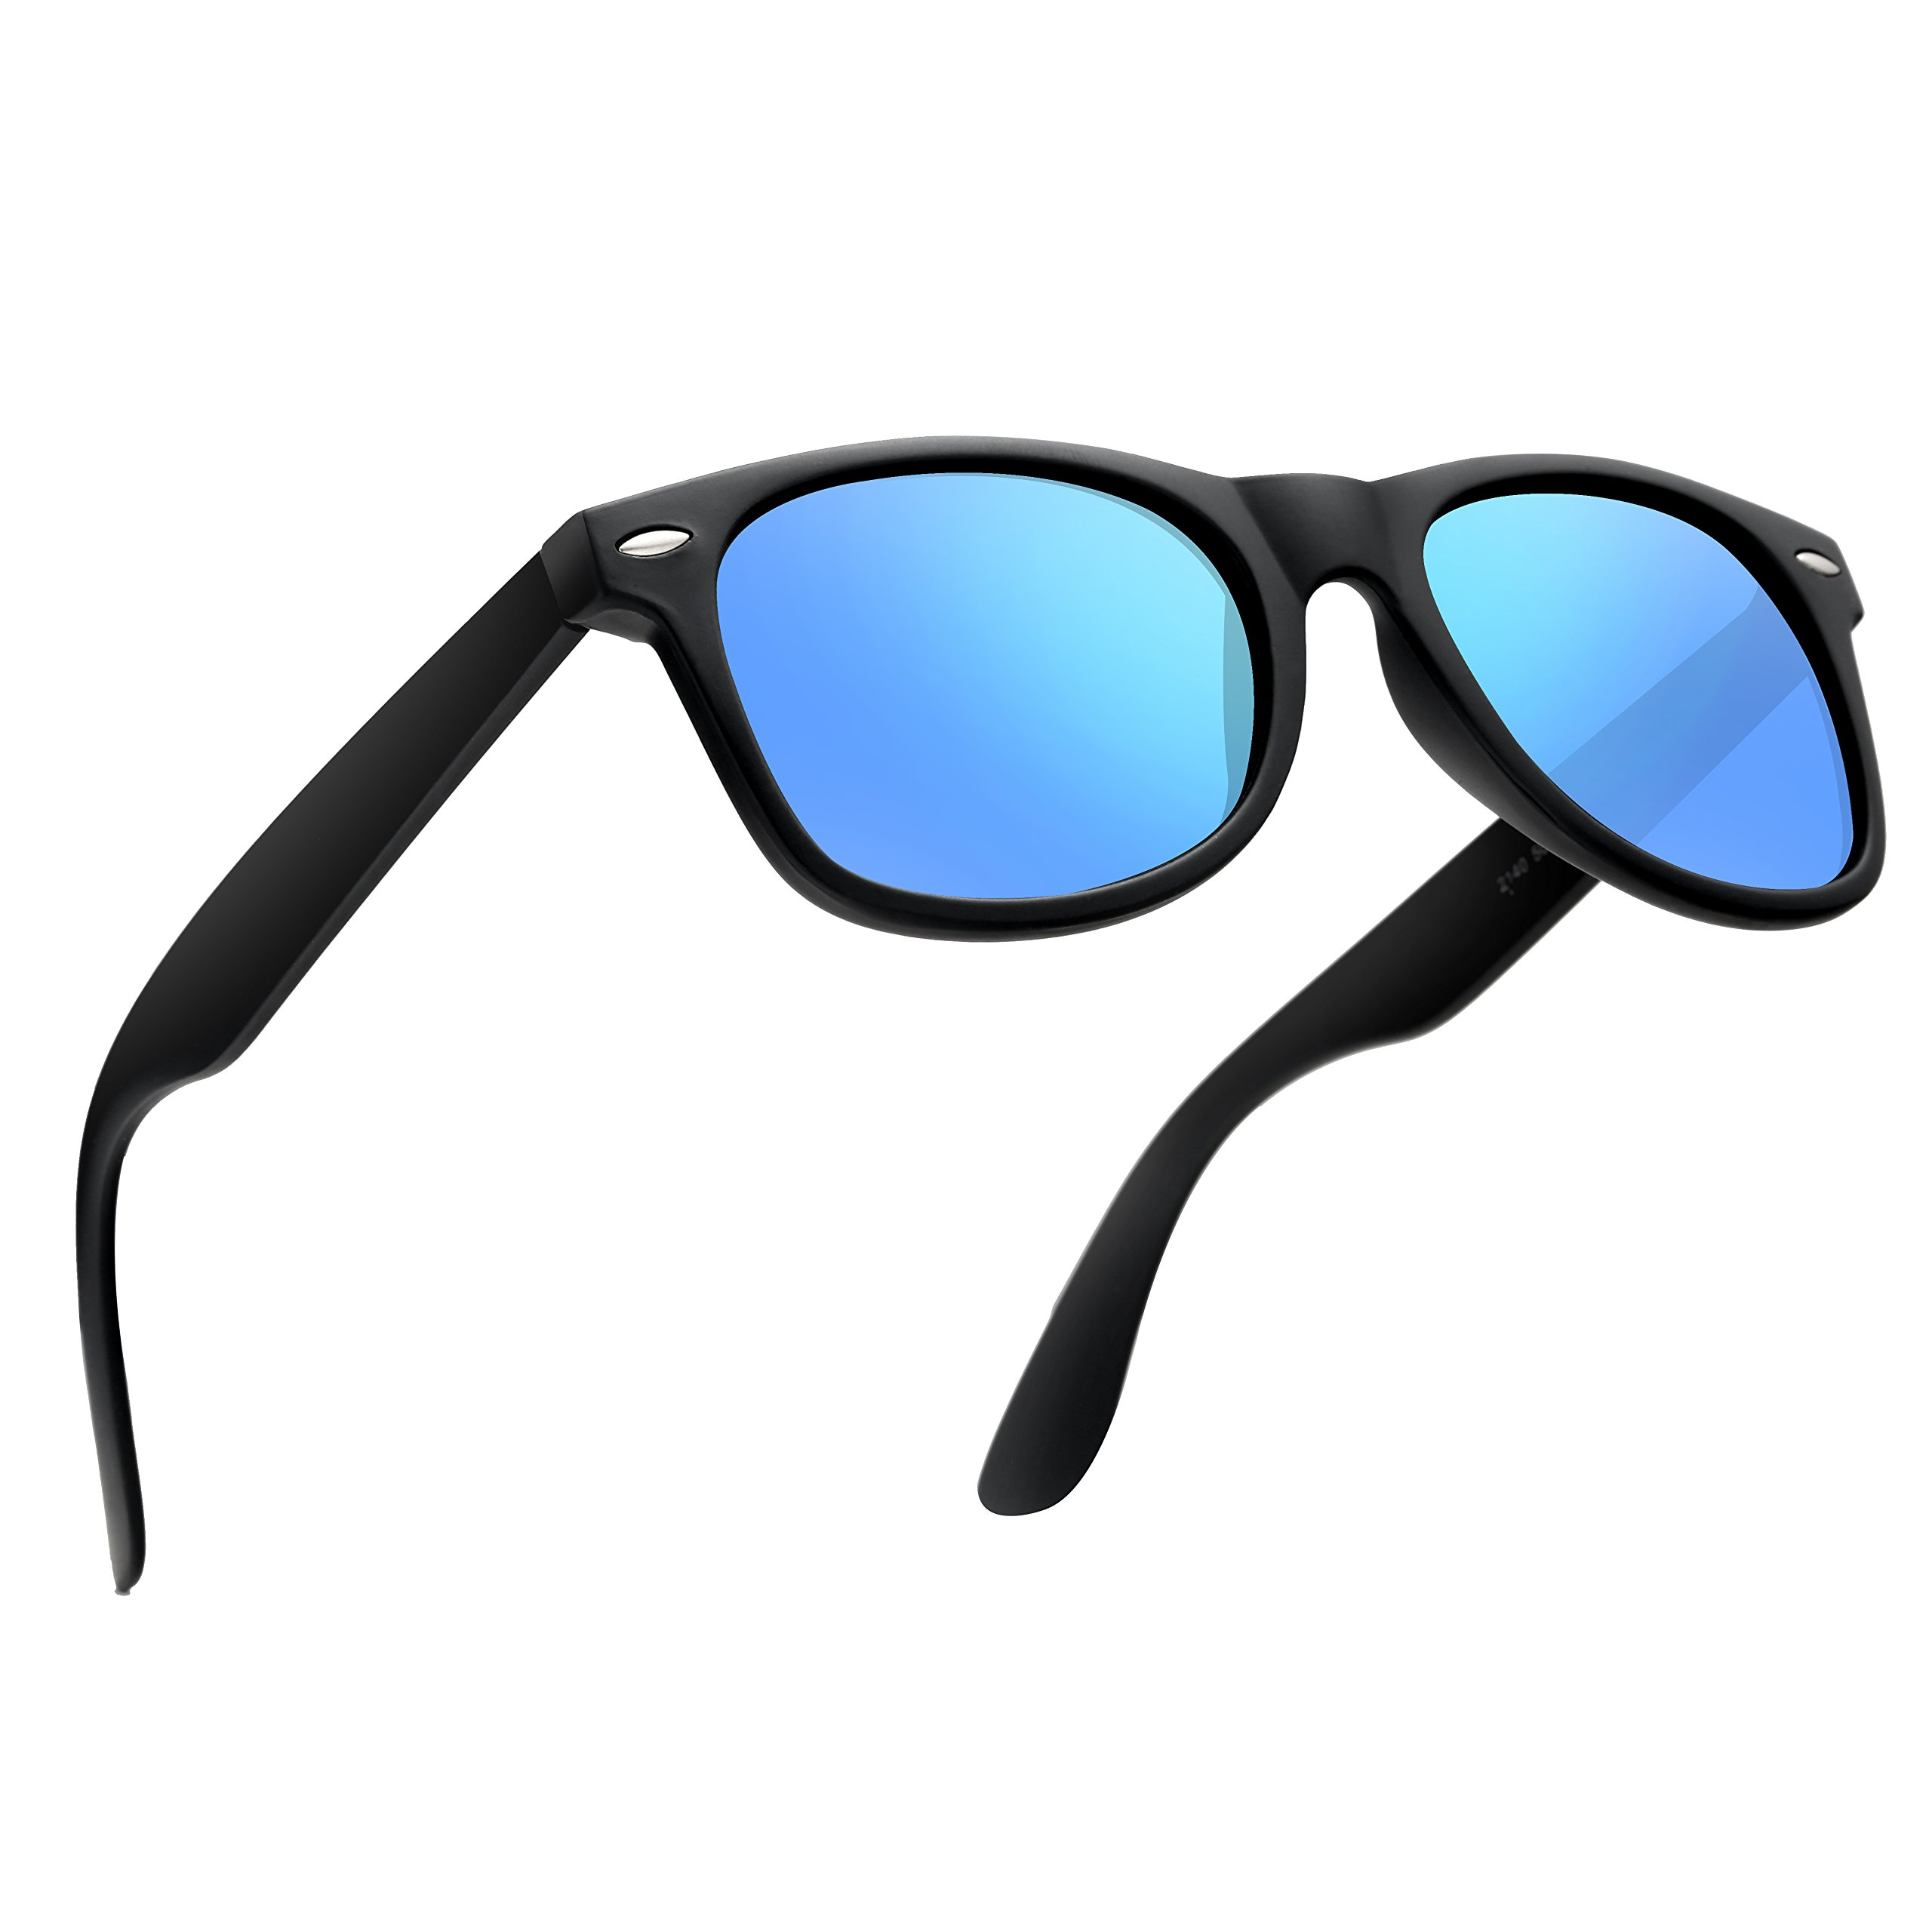 wearpro Wayfarer Sunglasses for Men Vintage Polarized Sun Glasses WP1001-2 (Blue, 2.13) by wearpro